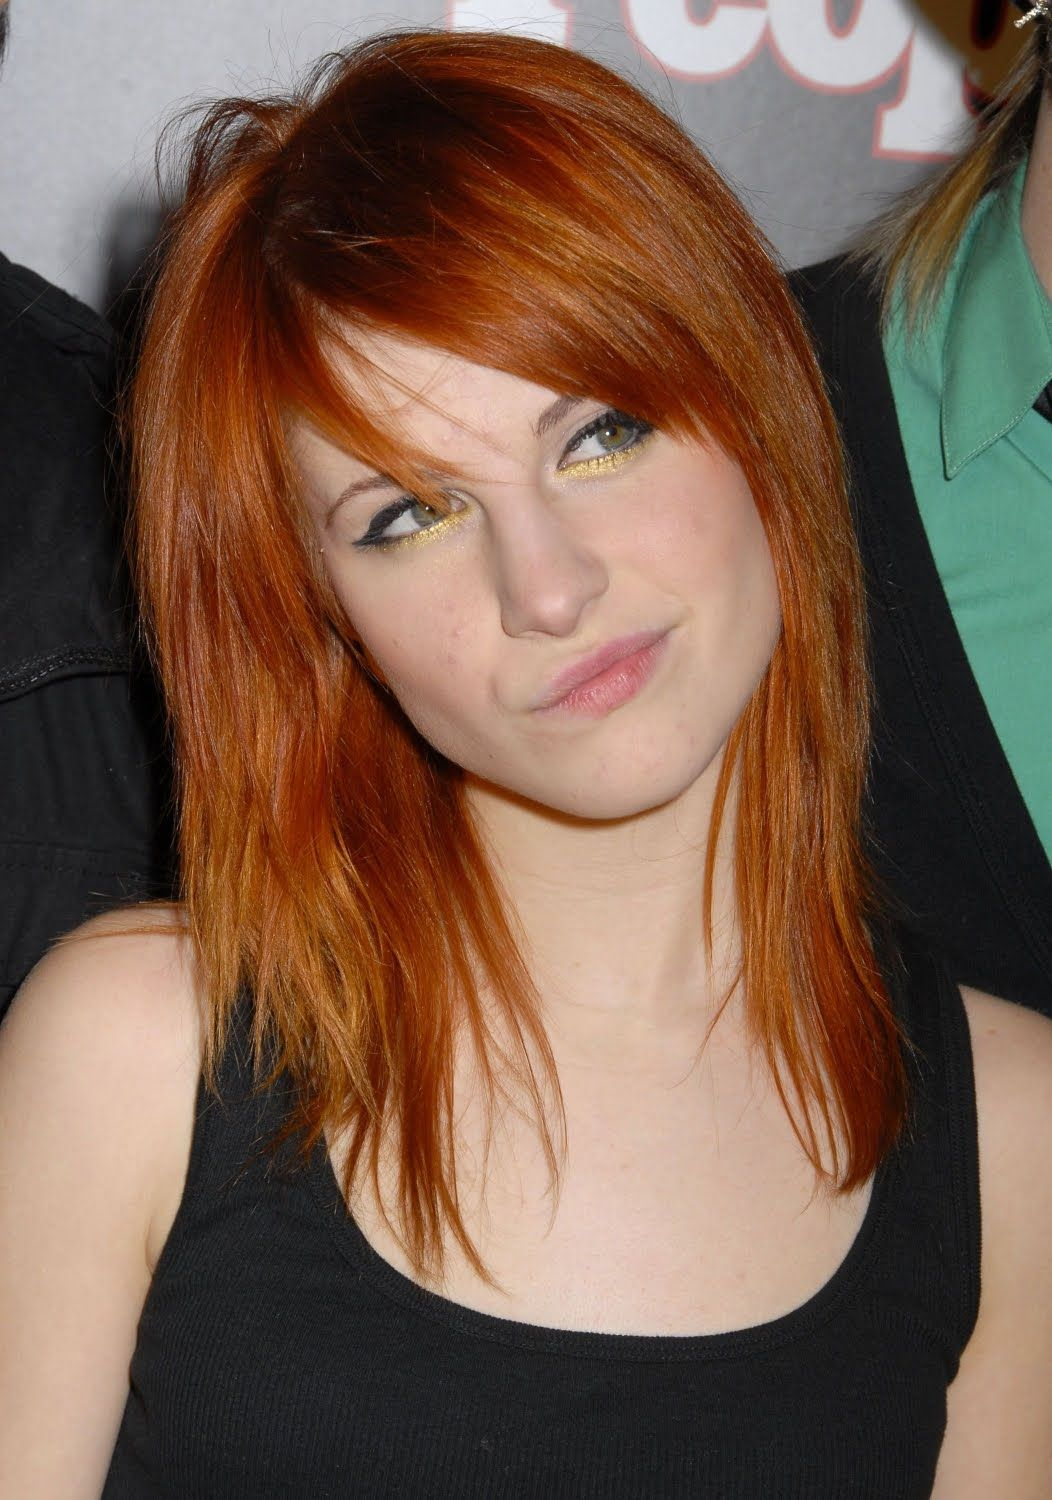 hayley-williams-twitter-naked-pics-uncensored-xxx-vip-first-time-in-sex